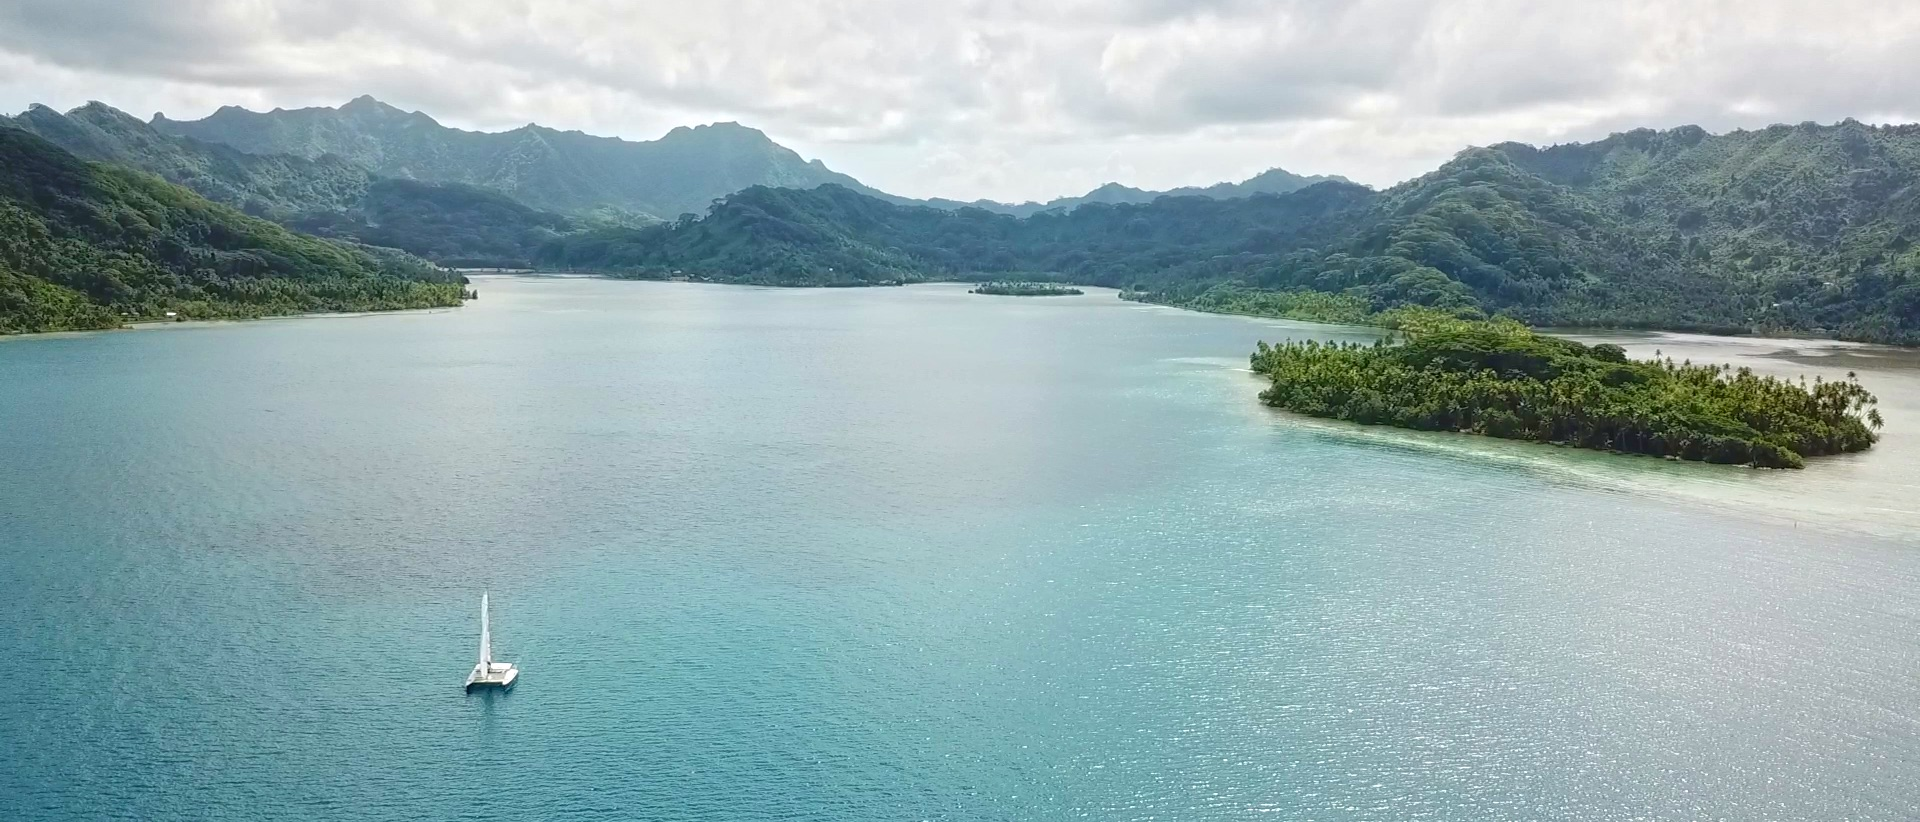 https://tahititourisme.mx/wp-content/uploads/2020/02/panorama-apu.jpg